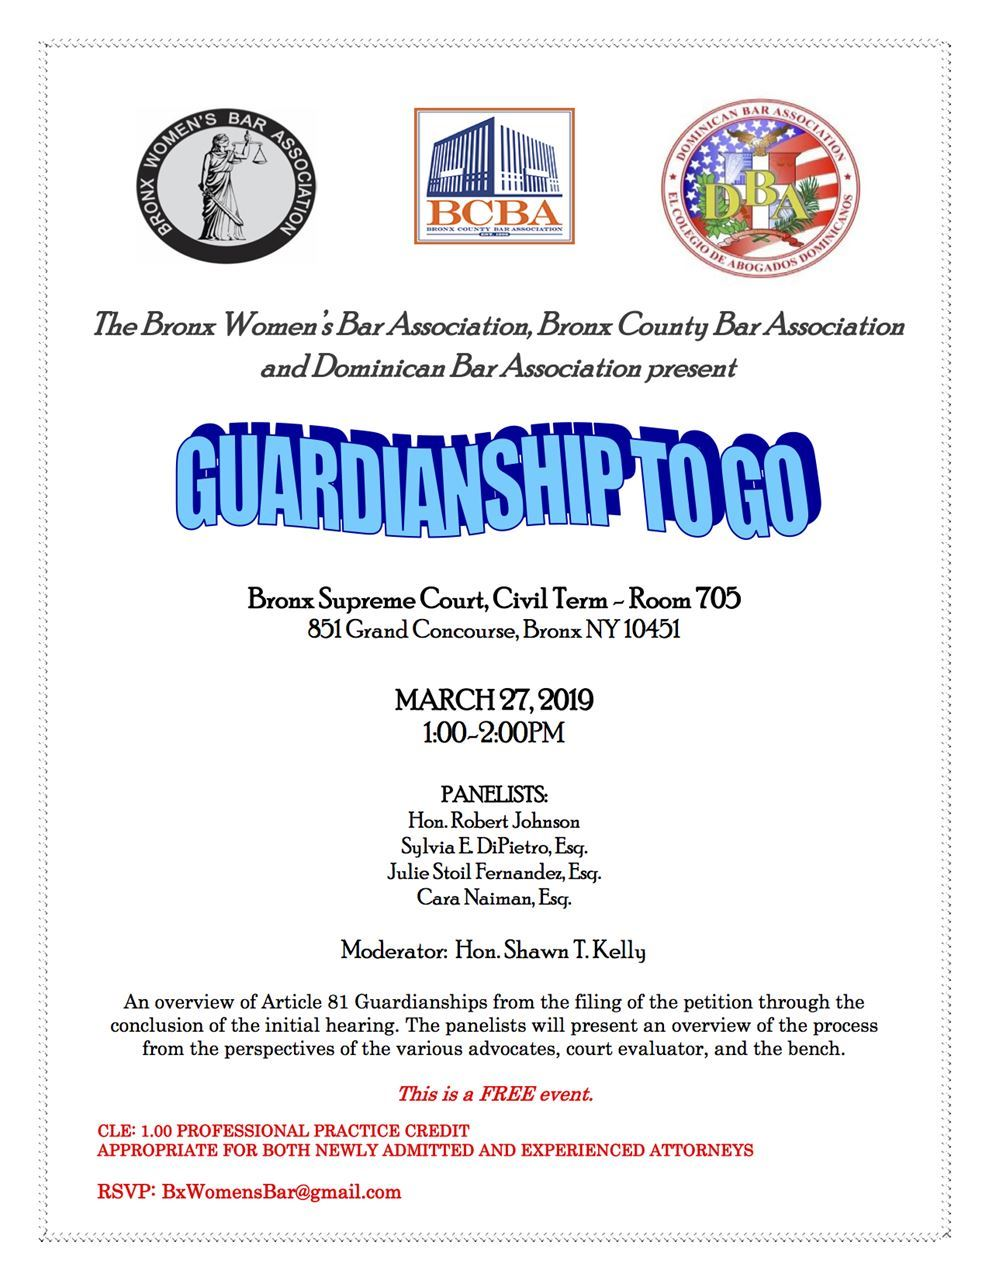 Dominican Bar Association - CLE: Guardianship To Go